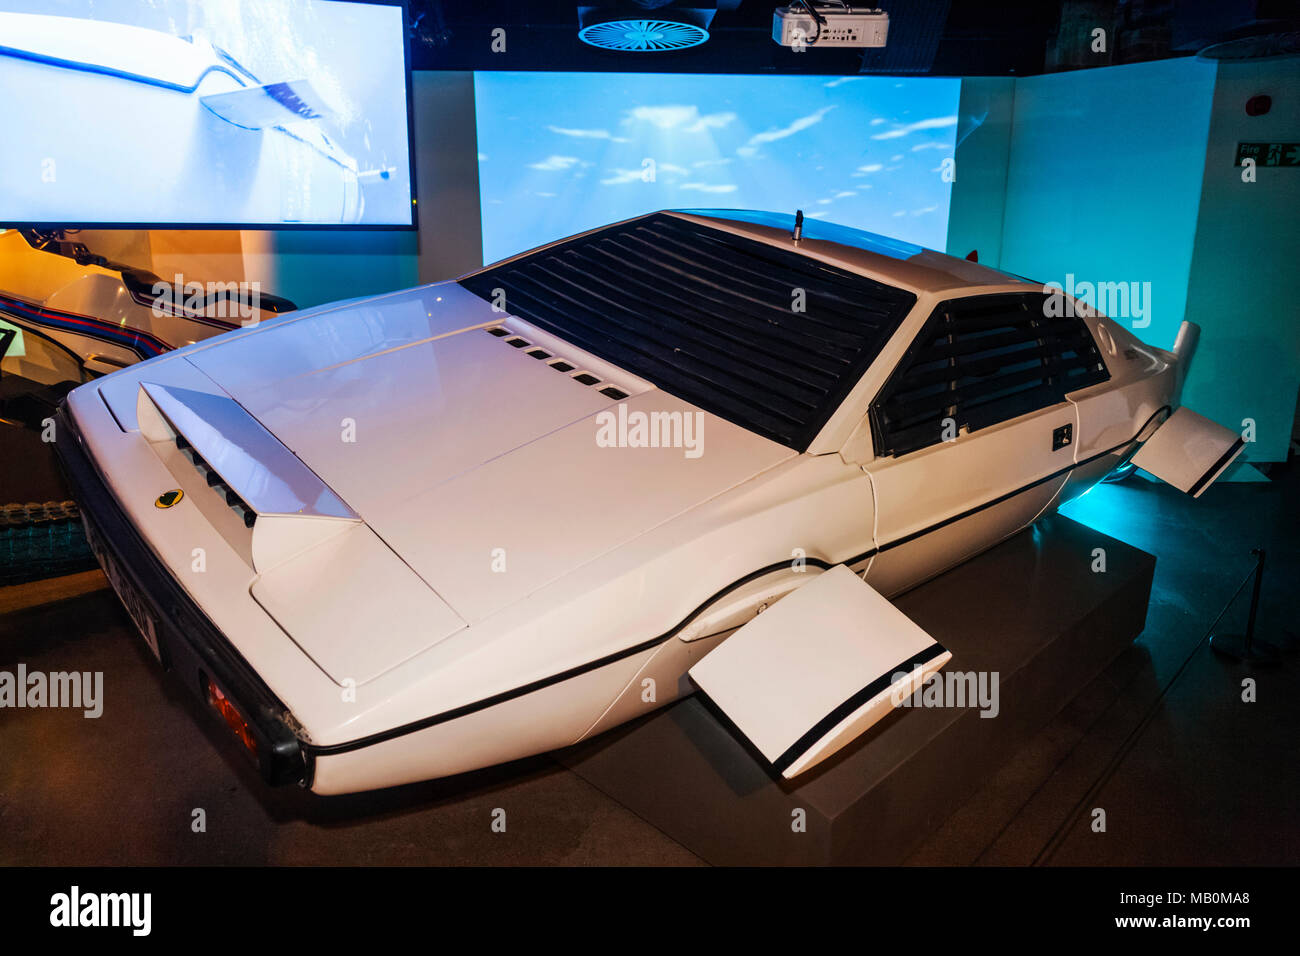 England, London, Covent Garden, London Film Museum, Lotus Esprit S1 Car from The James Bond Movie The Spy Who Loved Me dated 1977 - Stock Image